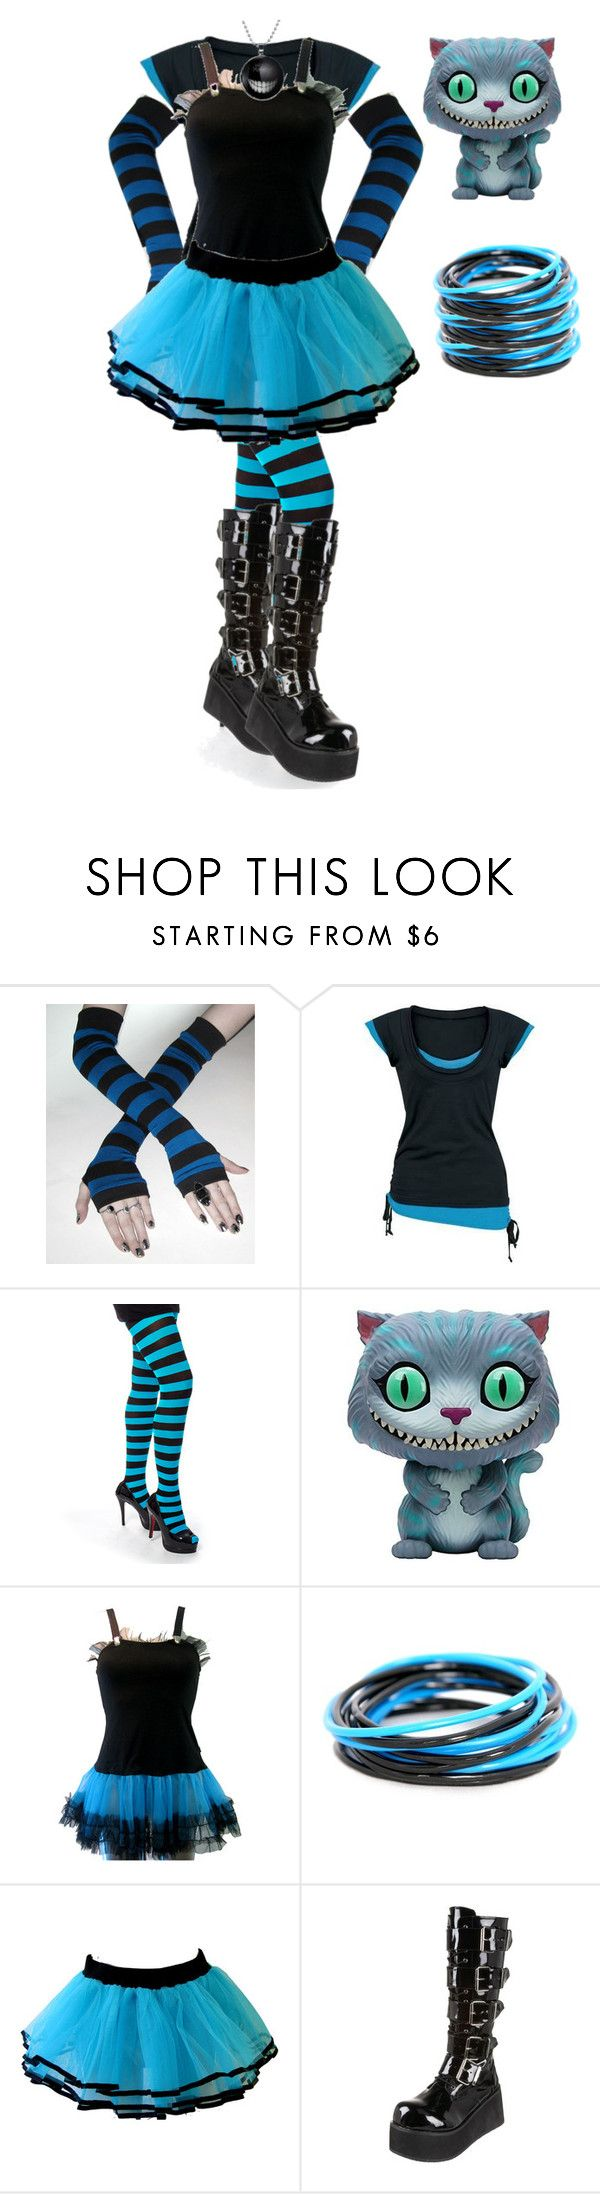 """Outfit 493"" by creaturefeaturerules ❤ liked on Polyvore featuring Pamela Mann, Disney and Pleaser"